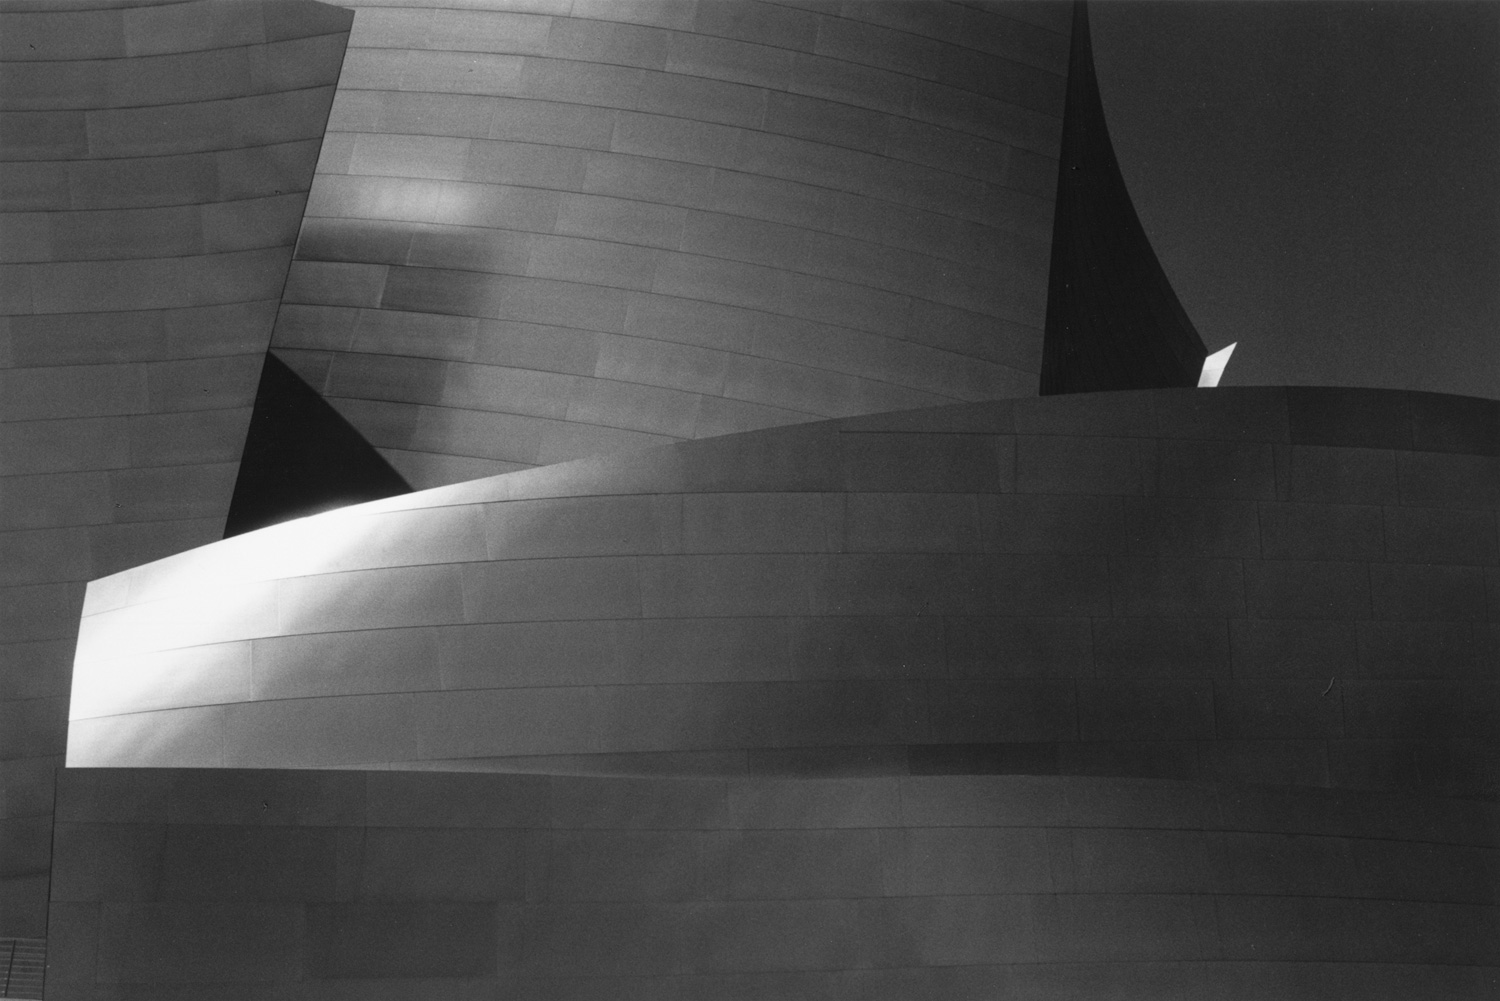 Frank Gehry's Vision II